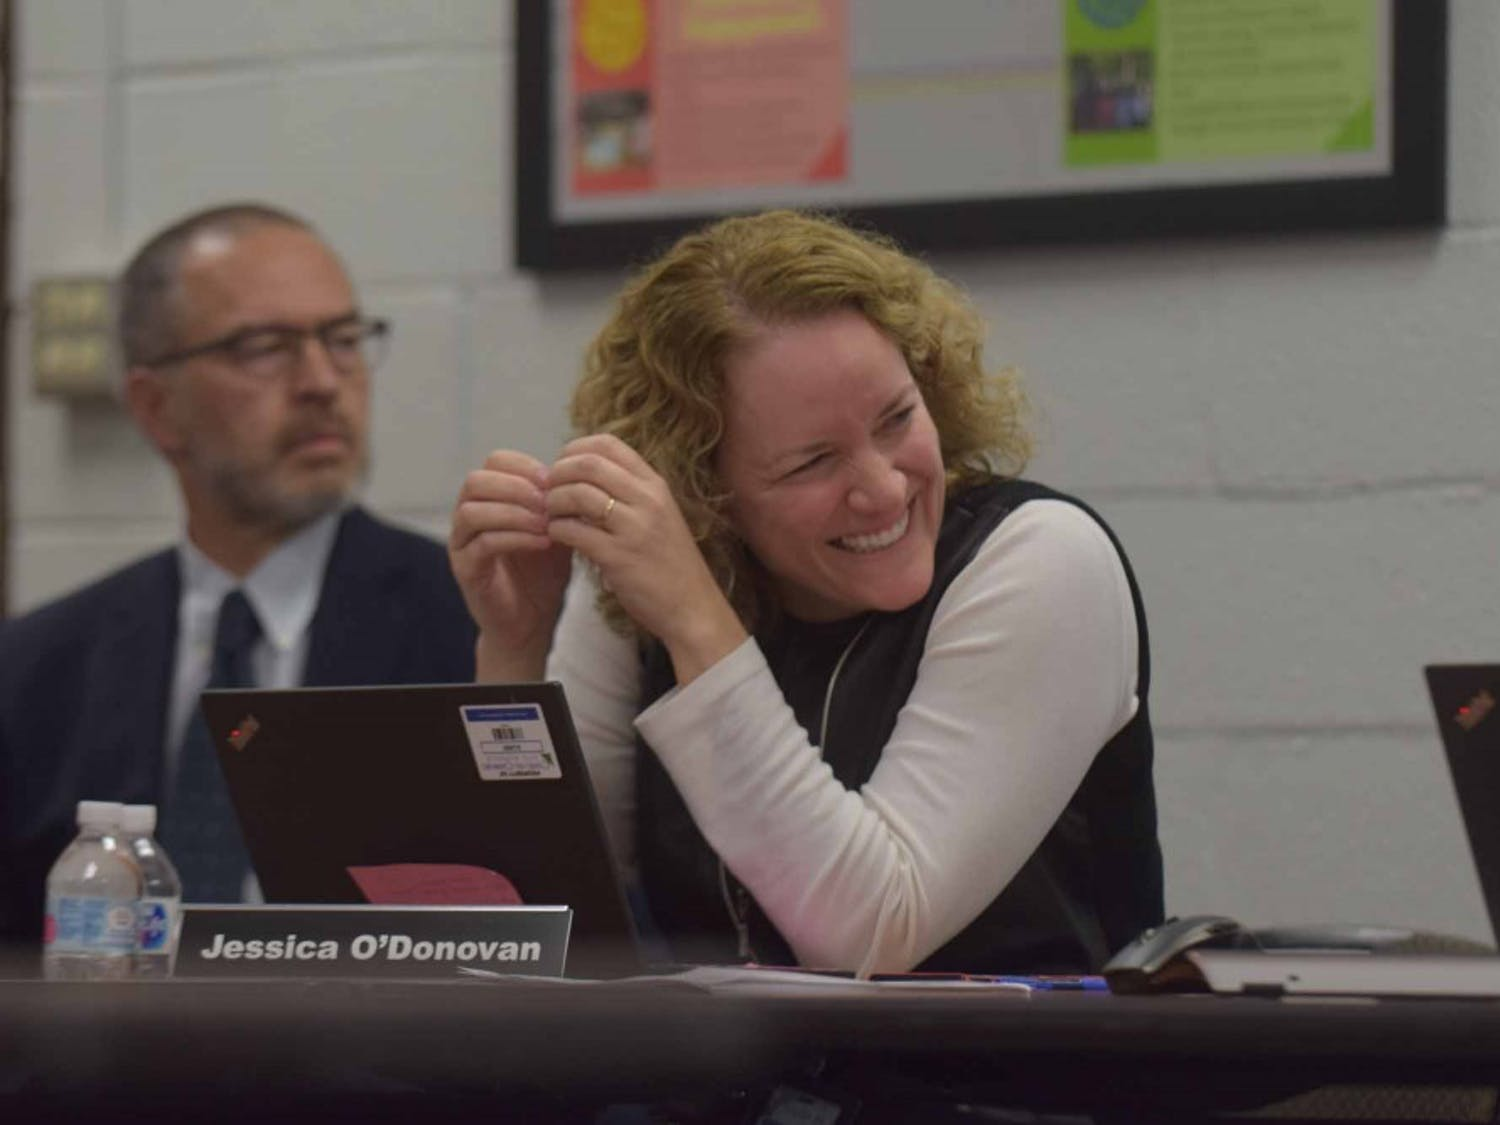 Jessica O'Donovan, assistant superintendent of Chapel Hill-Carrboro City Schools, talks during district meeting on Friday, Feb. 7, 2019 at the Lincoln Center, 750 S. Merritt Mill Rd.